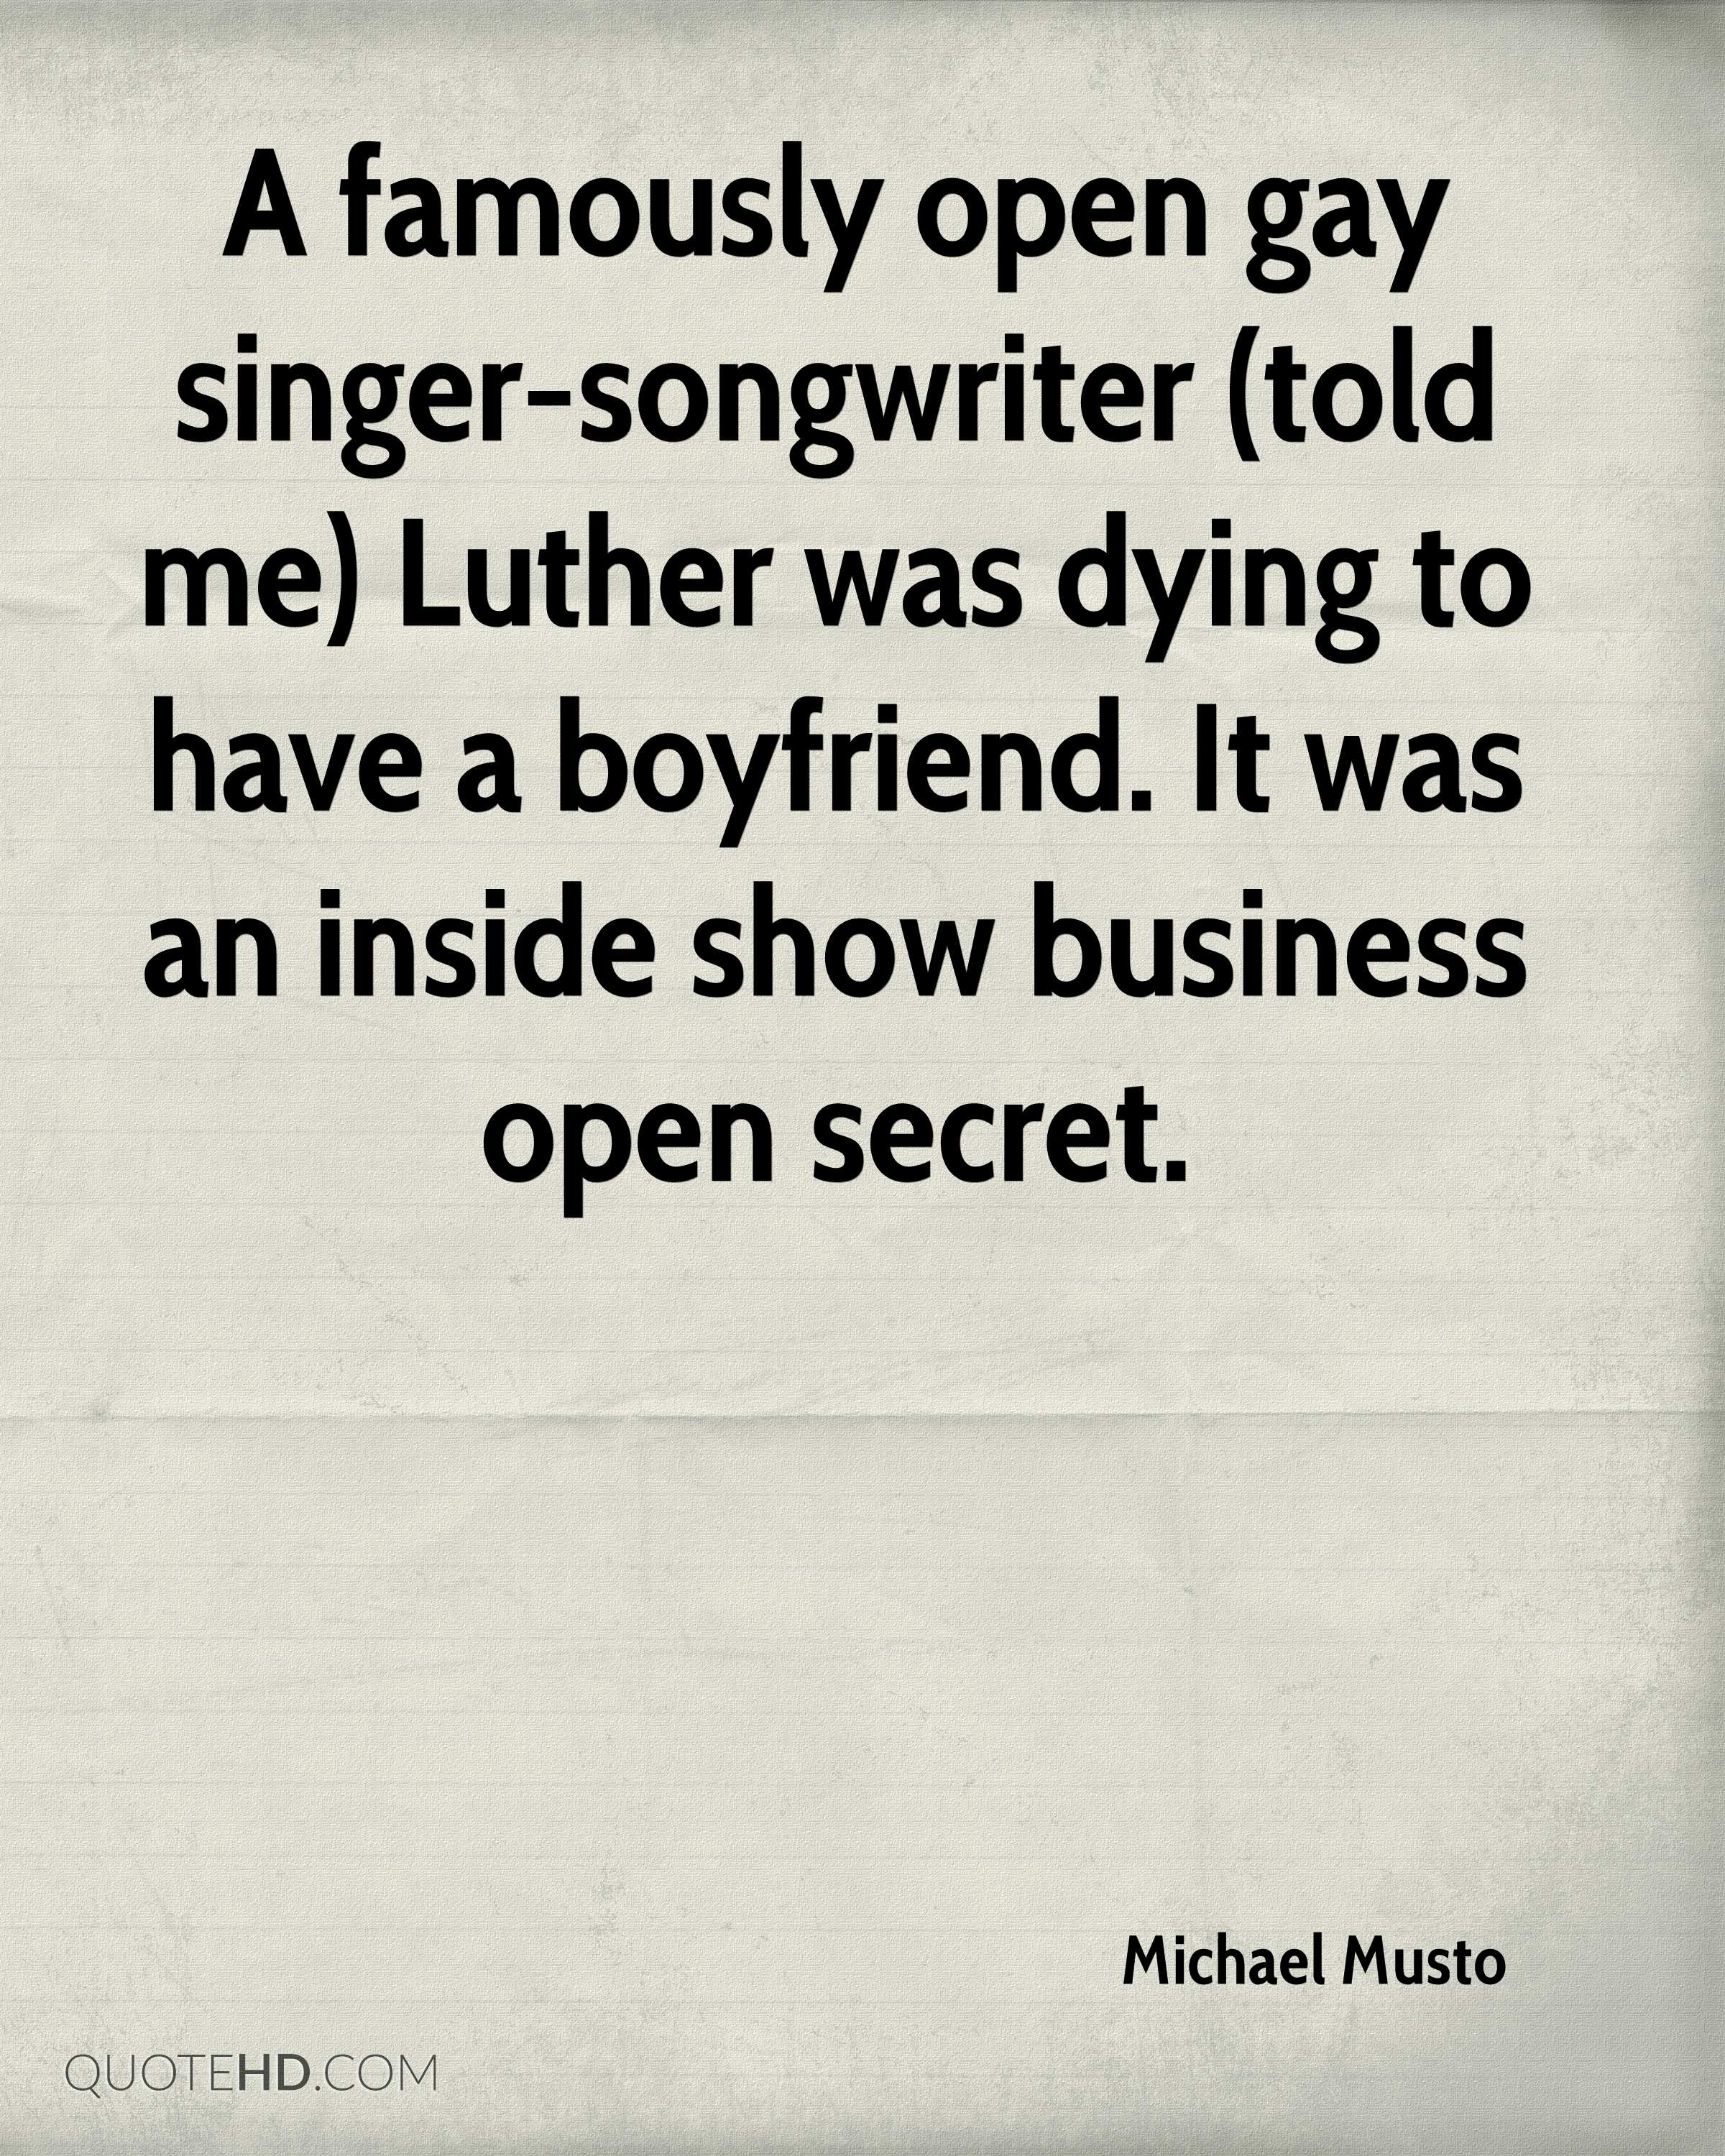 A famously open gay singer-songwriter (told me) Luther was dying to have a boyfriend. It was an inside show business open secret.